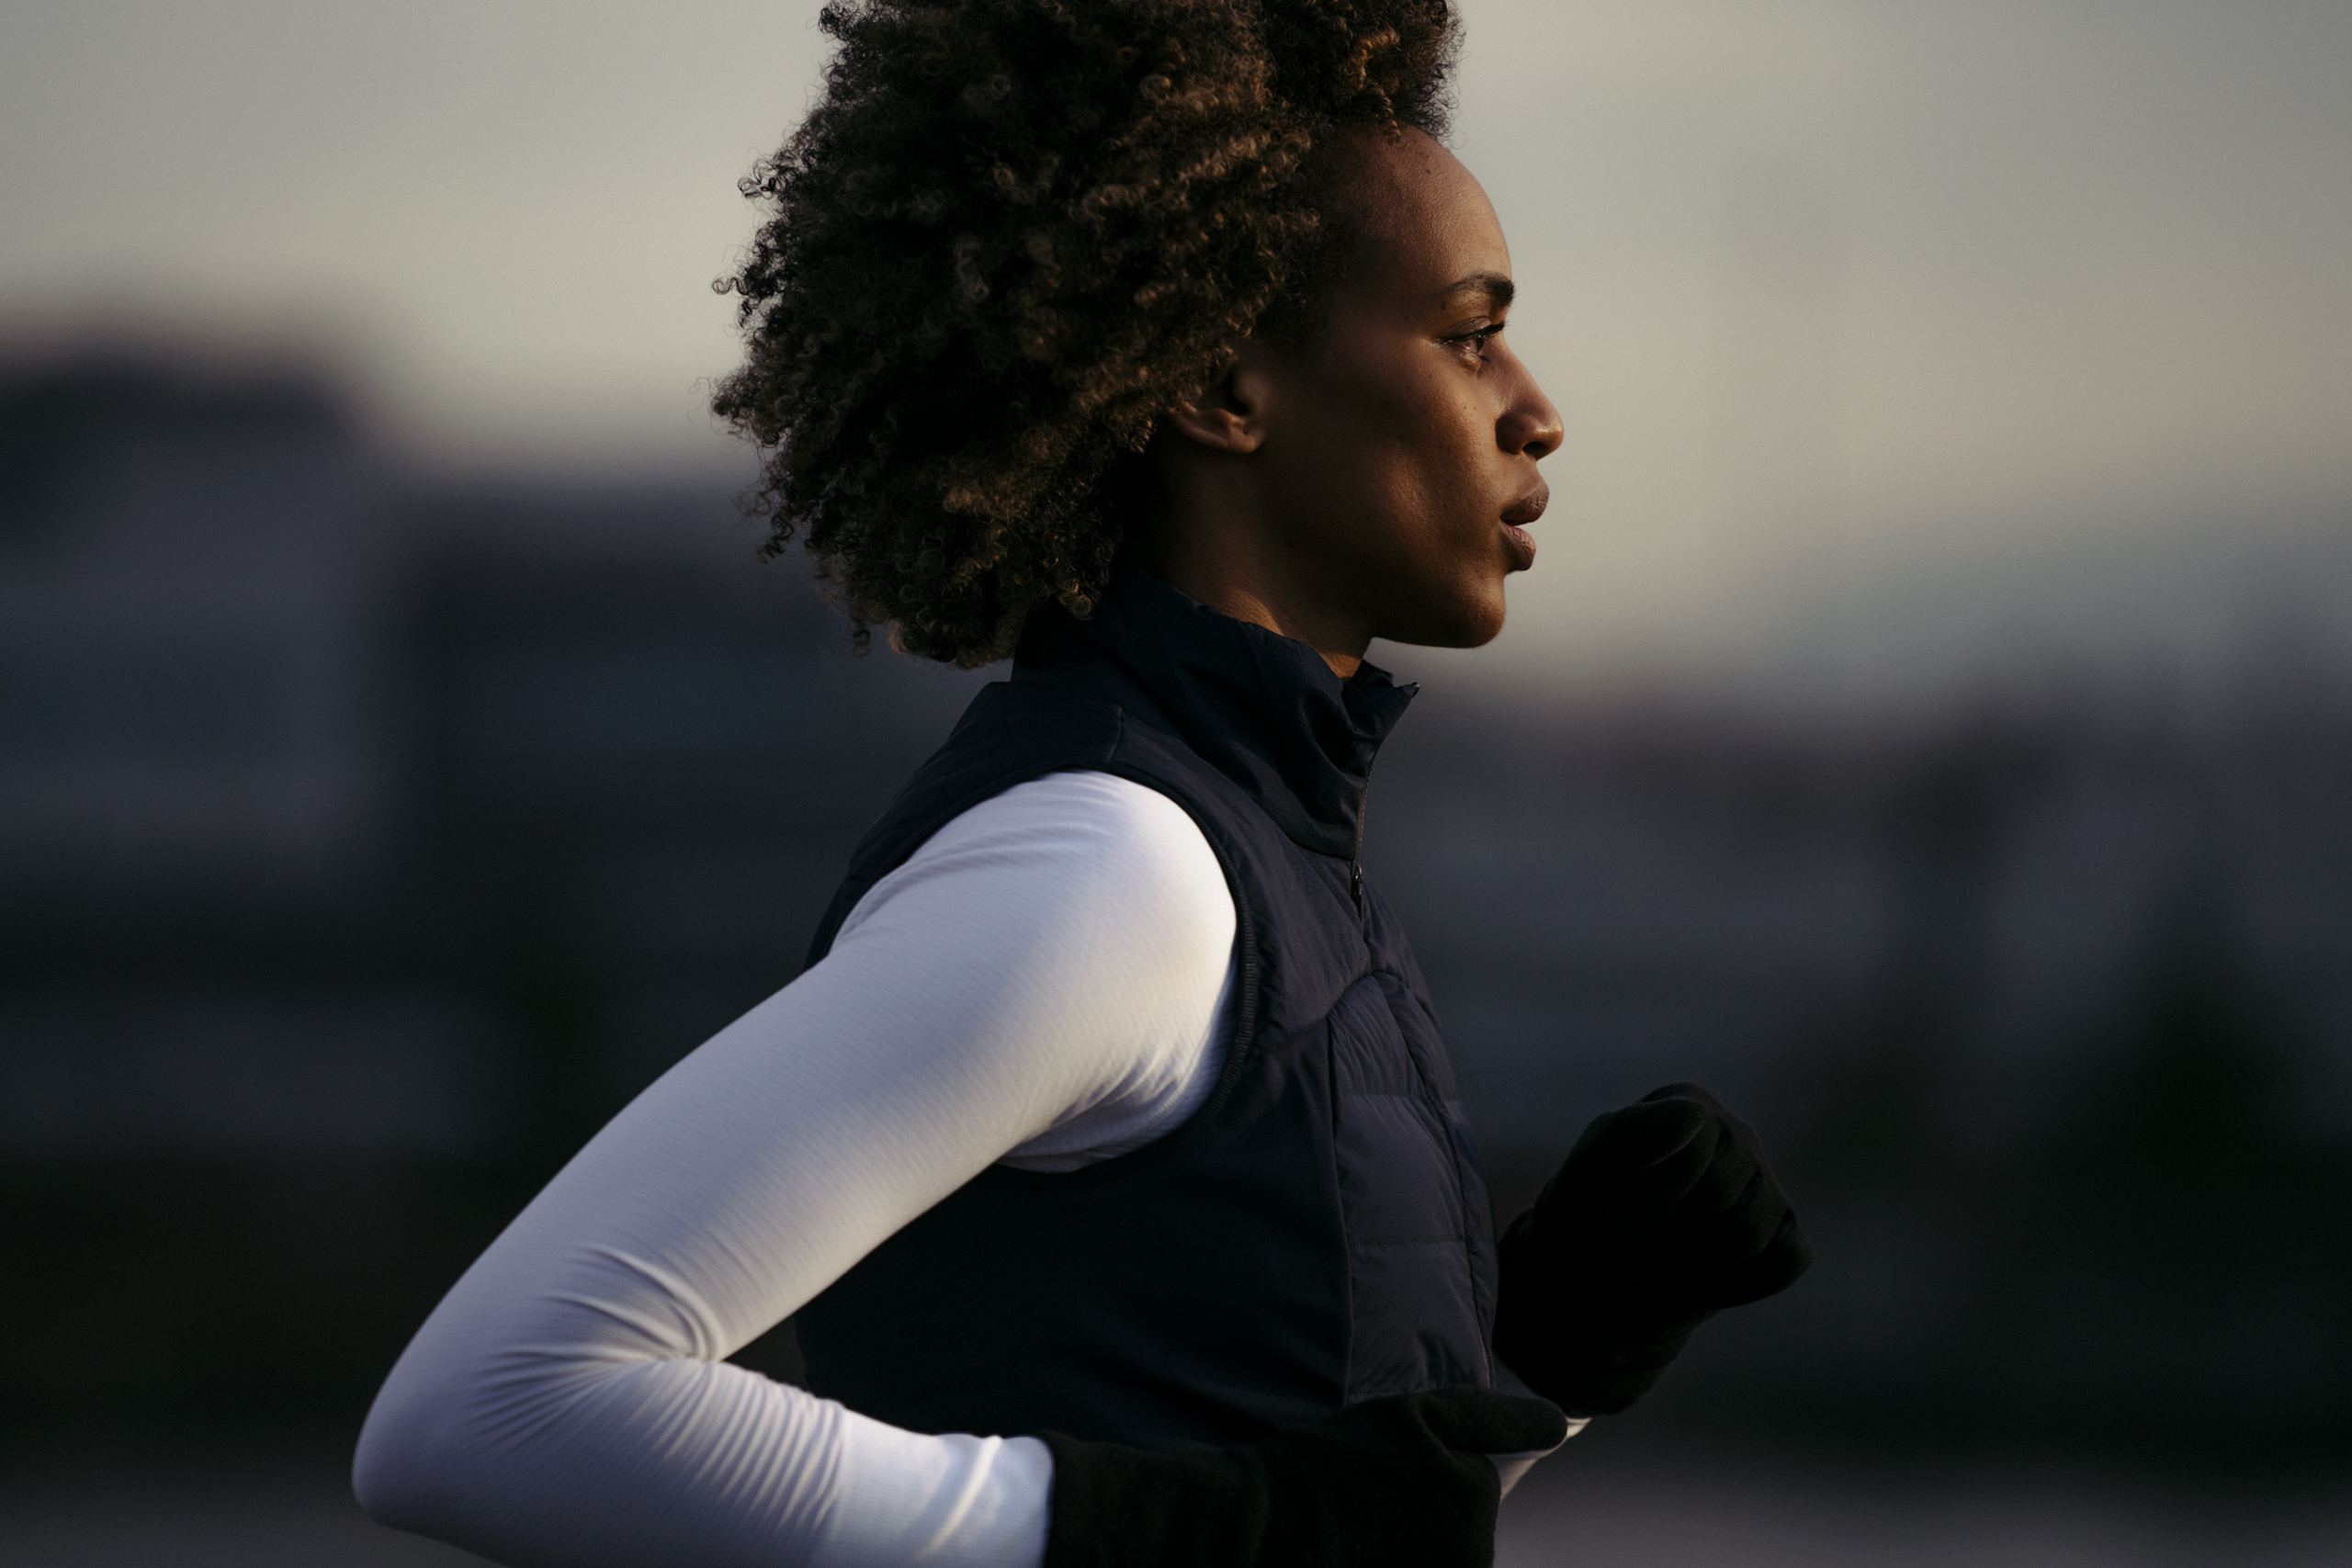 Filsan Abdiaman, a black woman, runs with her face tilted toward the light, the background blurry behind her.